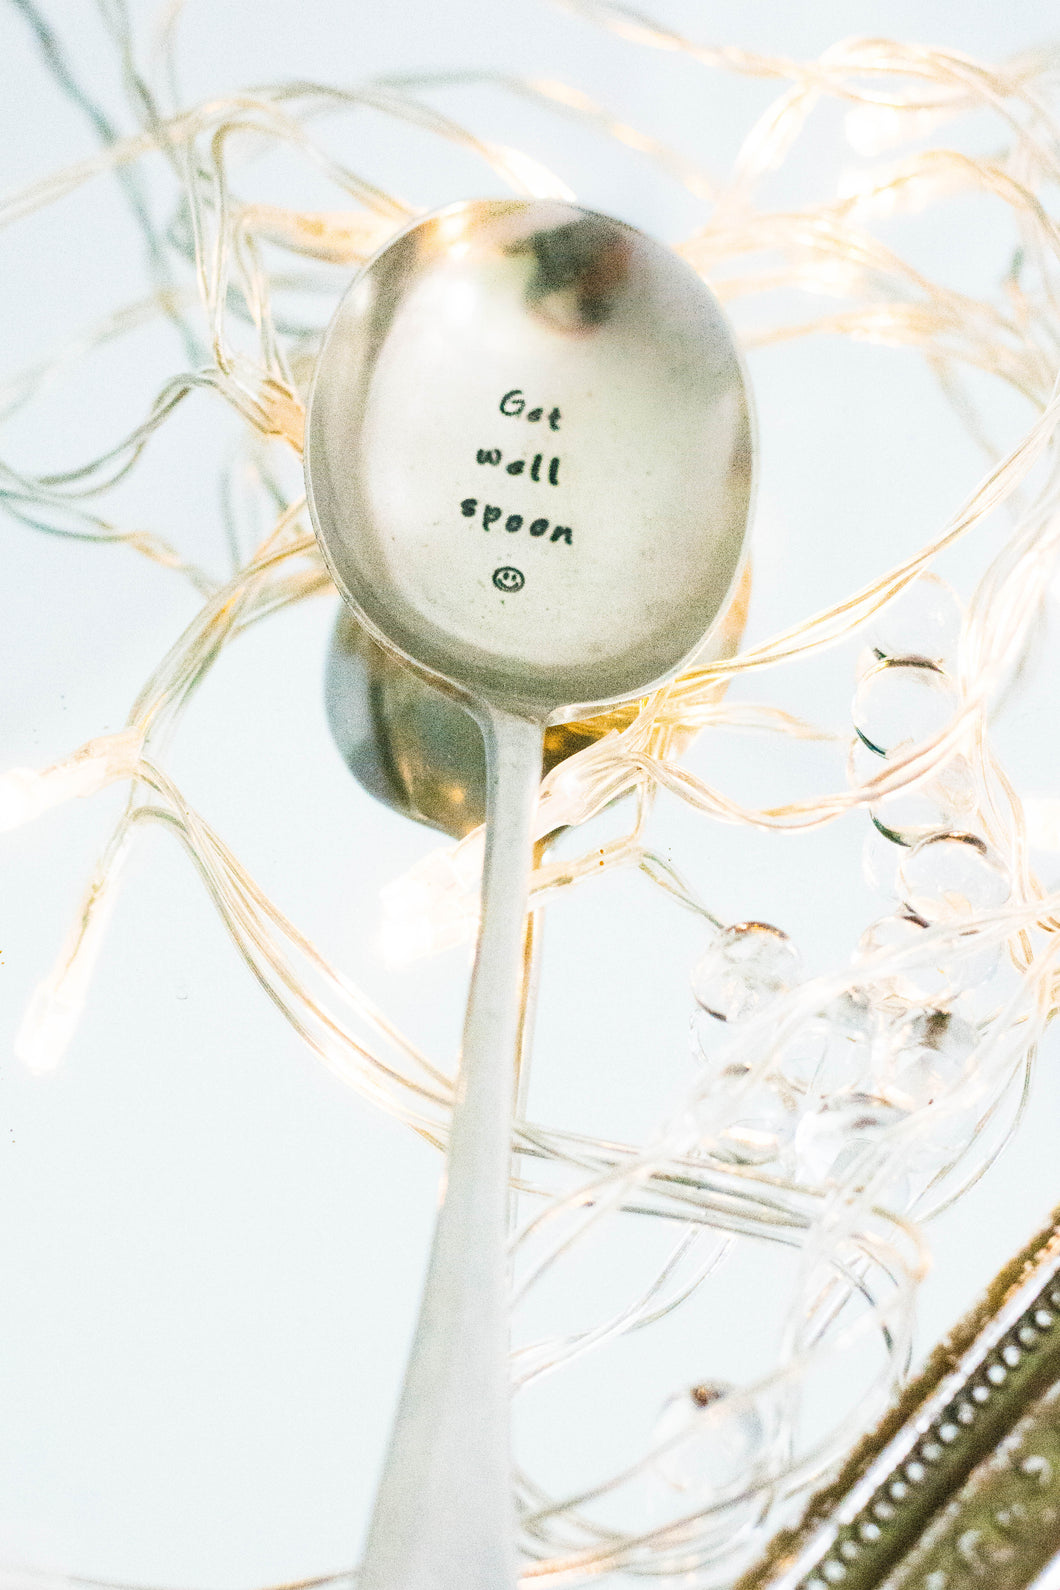 Get Well Spoon - Hand Stamped Engraved Spoon - Vintage Soup Spoon - One Mama One Shed